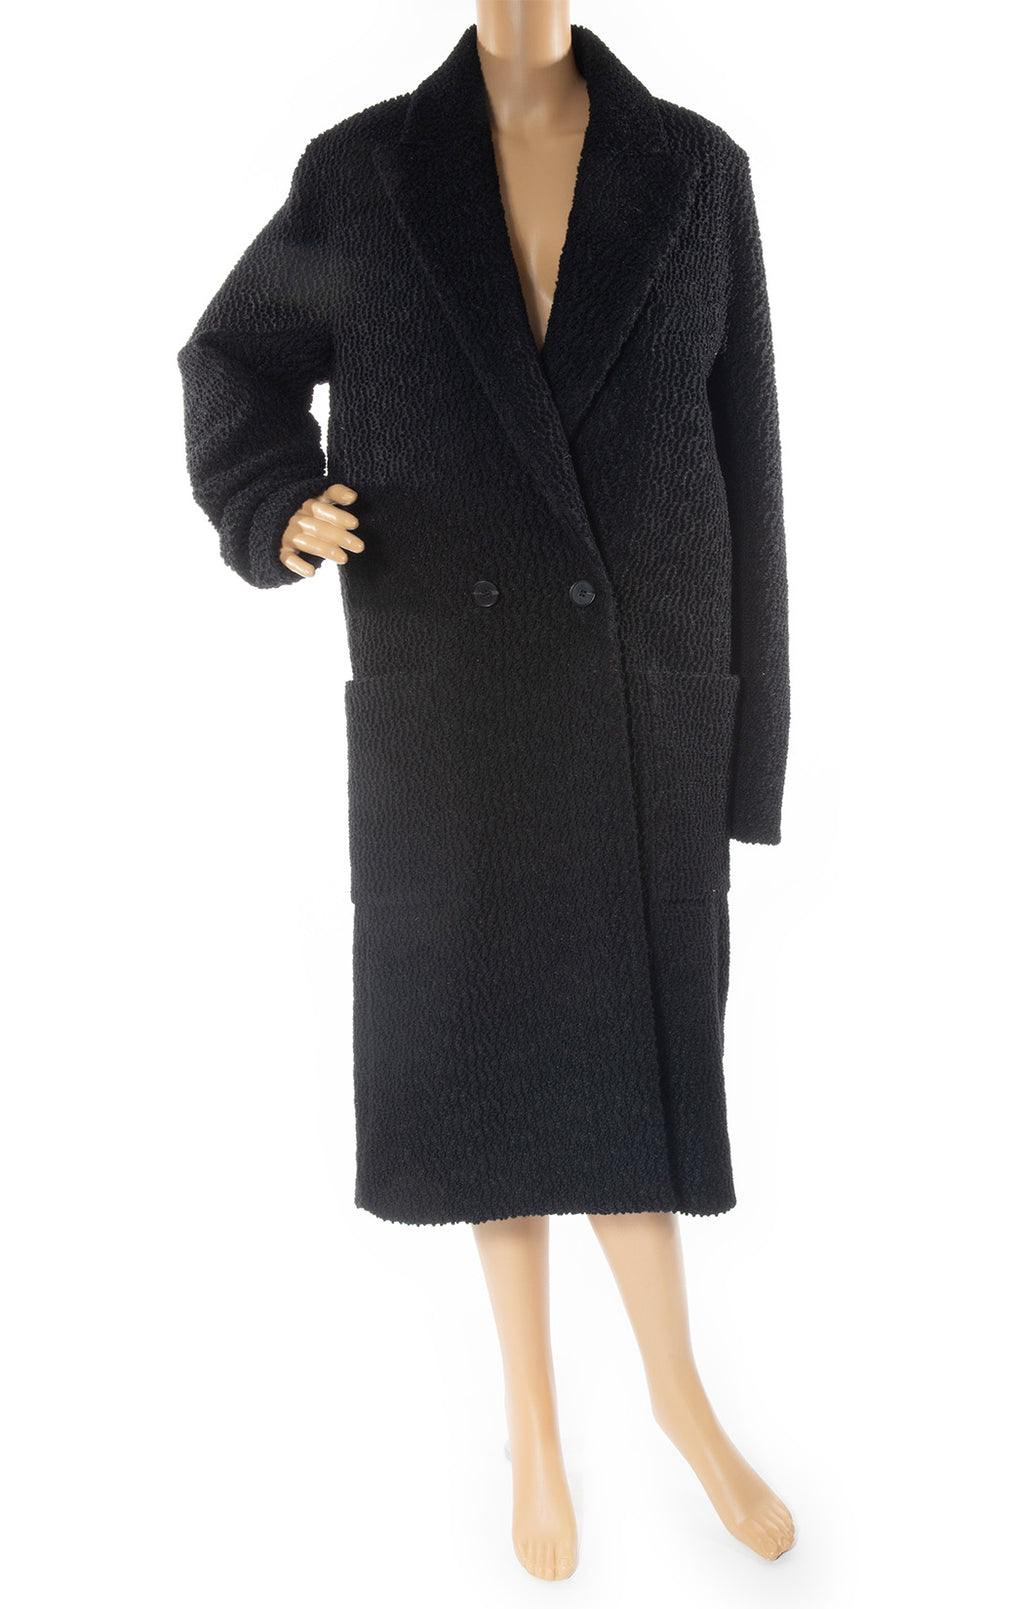 Front view of ZAID AFFAR Coat Size: No tags, fits like size US 6-8